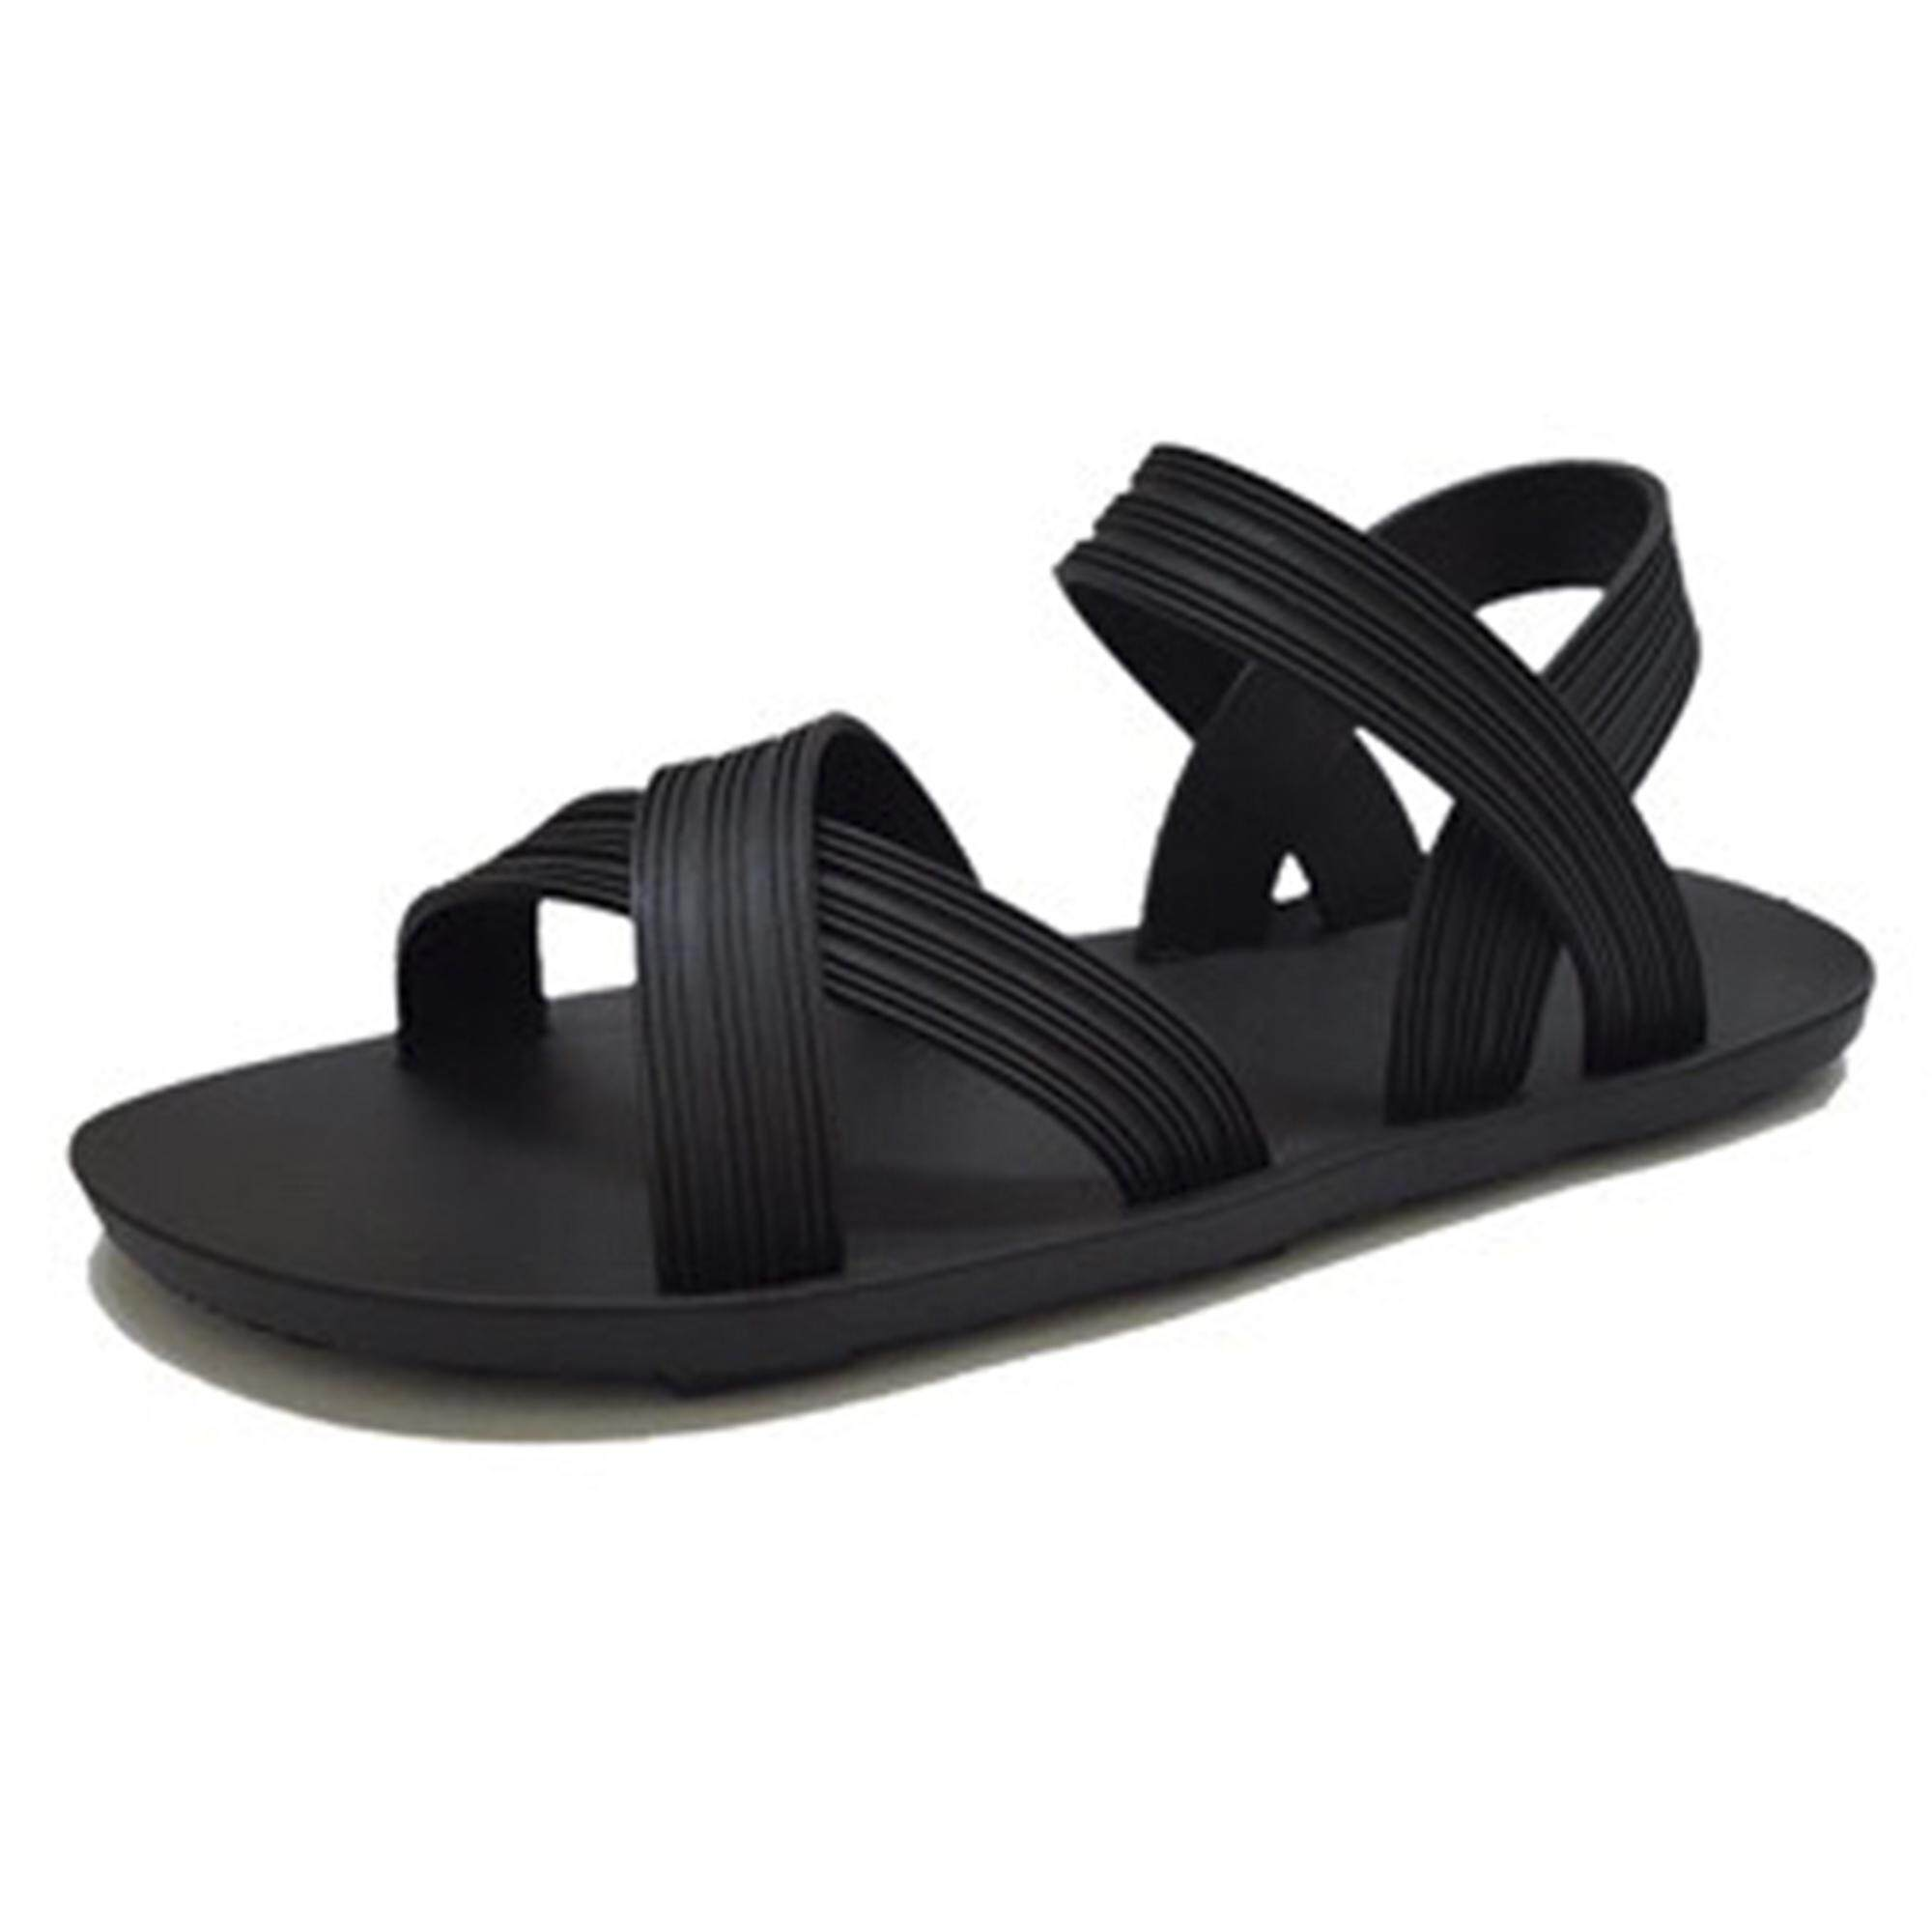 16c5195a8 Buy Sandals for Women Online at Best Prices in Malaysia